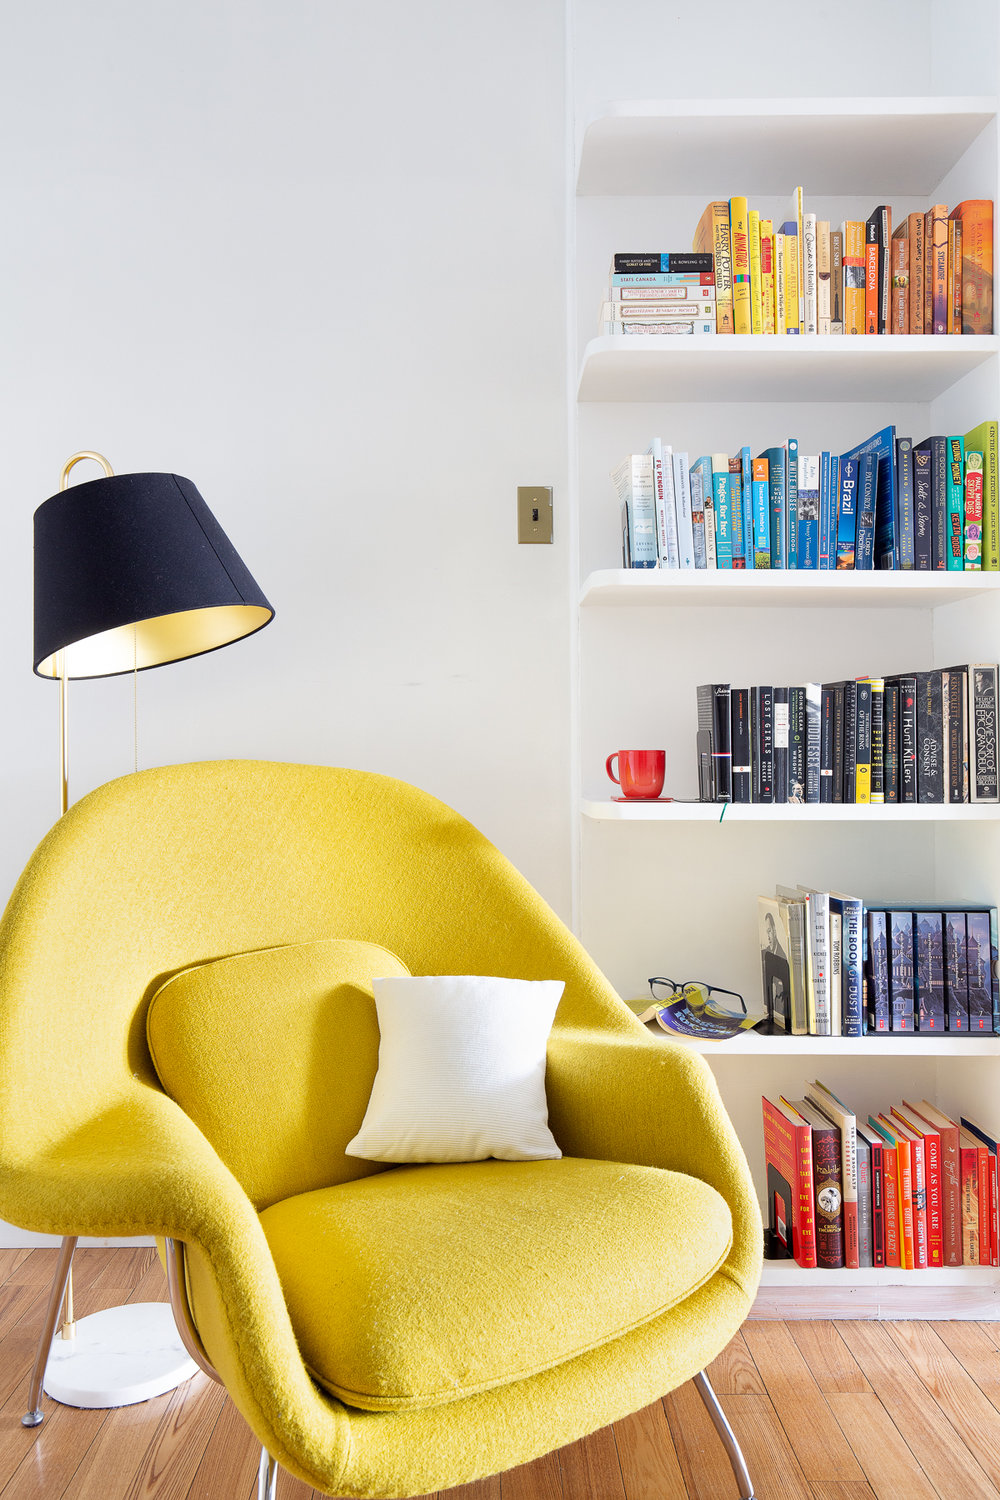 The design classic WOMB chair in a beautiful Chartreuse Felt with chrome legs is the main feature in the room againt backdrop of this amazing bookshelf styled by color.